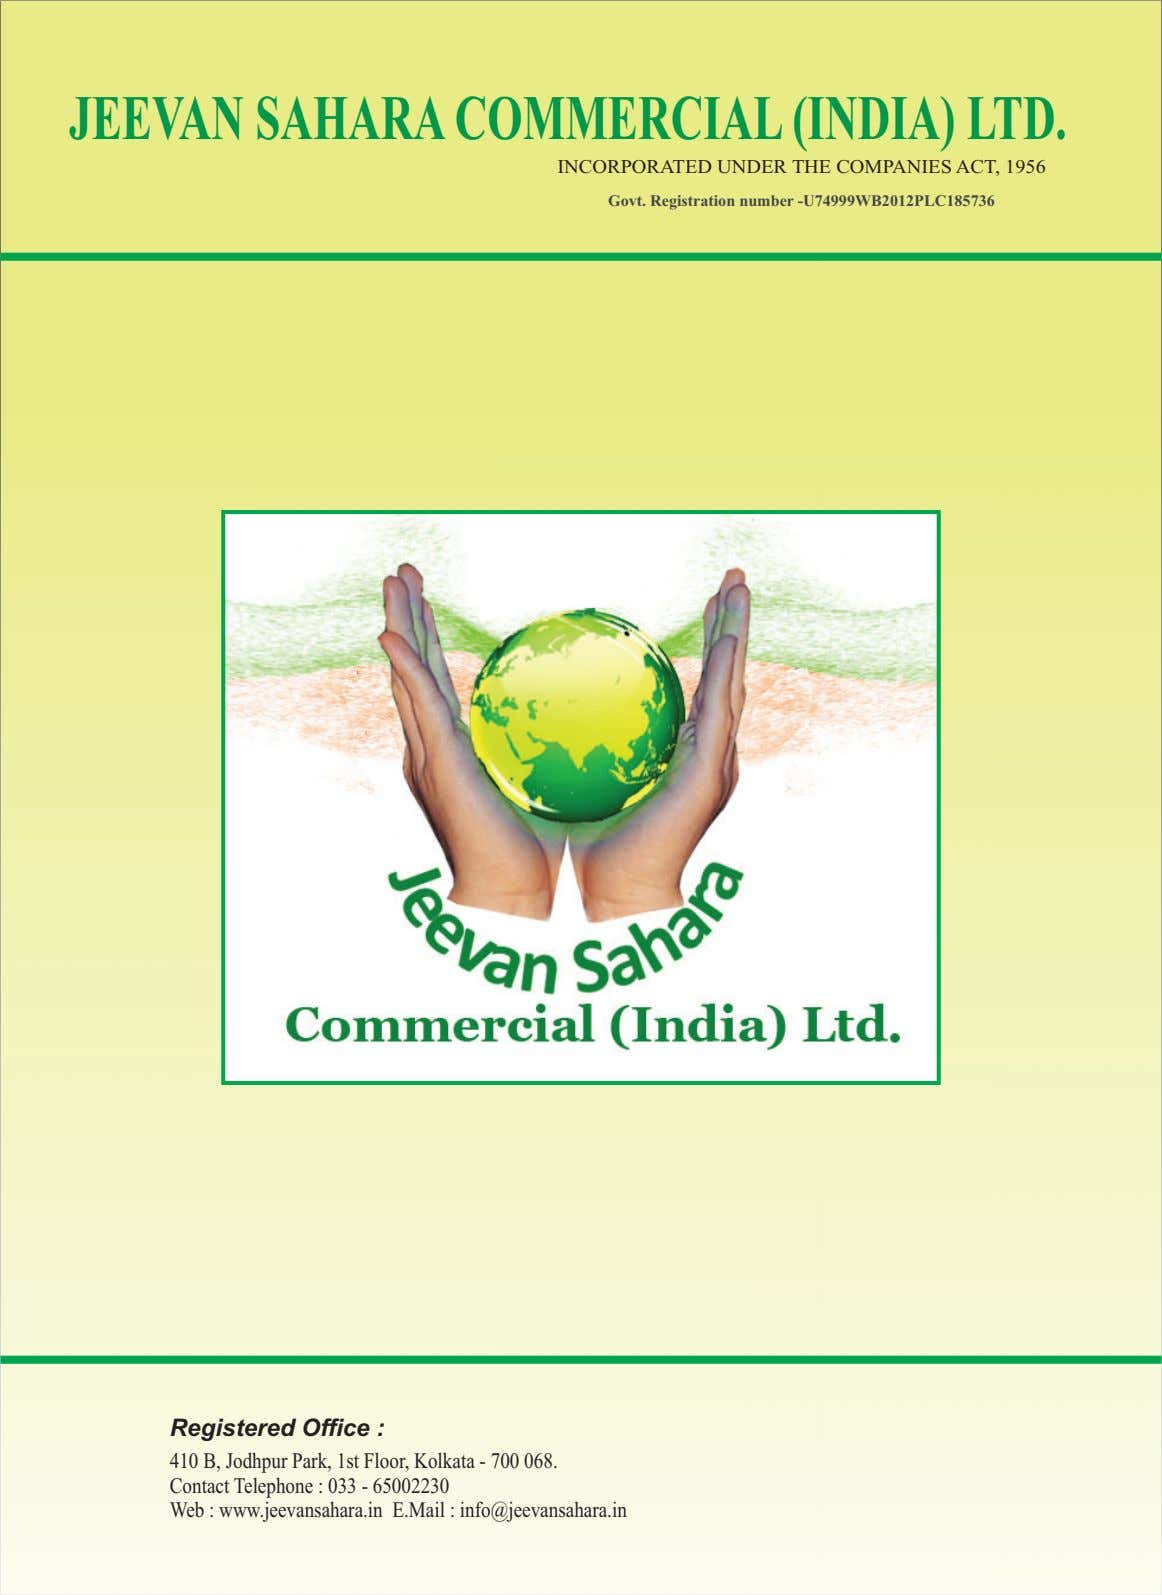 JEEVANSAHARACOMMERCIAL(INDIA) LTD. INCORPORATED UNDER THE COMPANIES ACT, 1956 Govt. Registration number